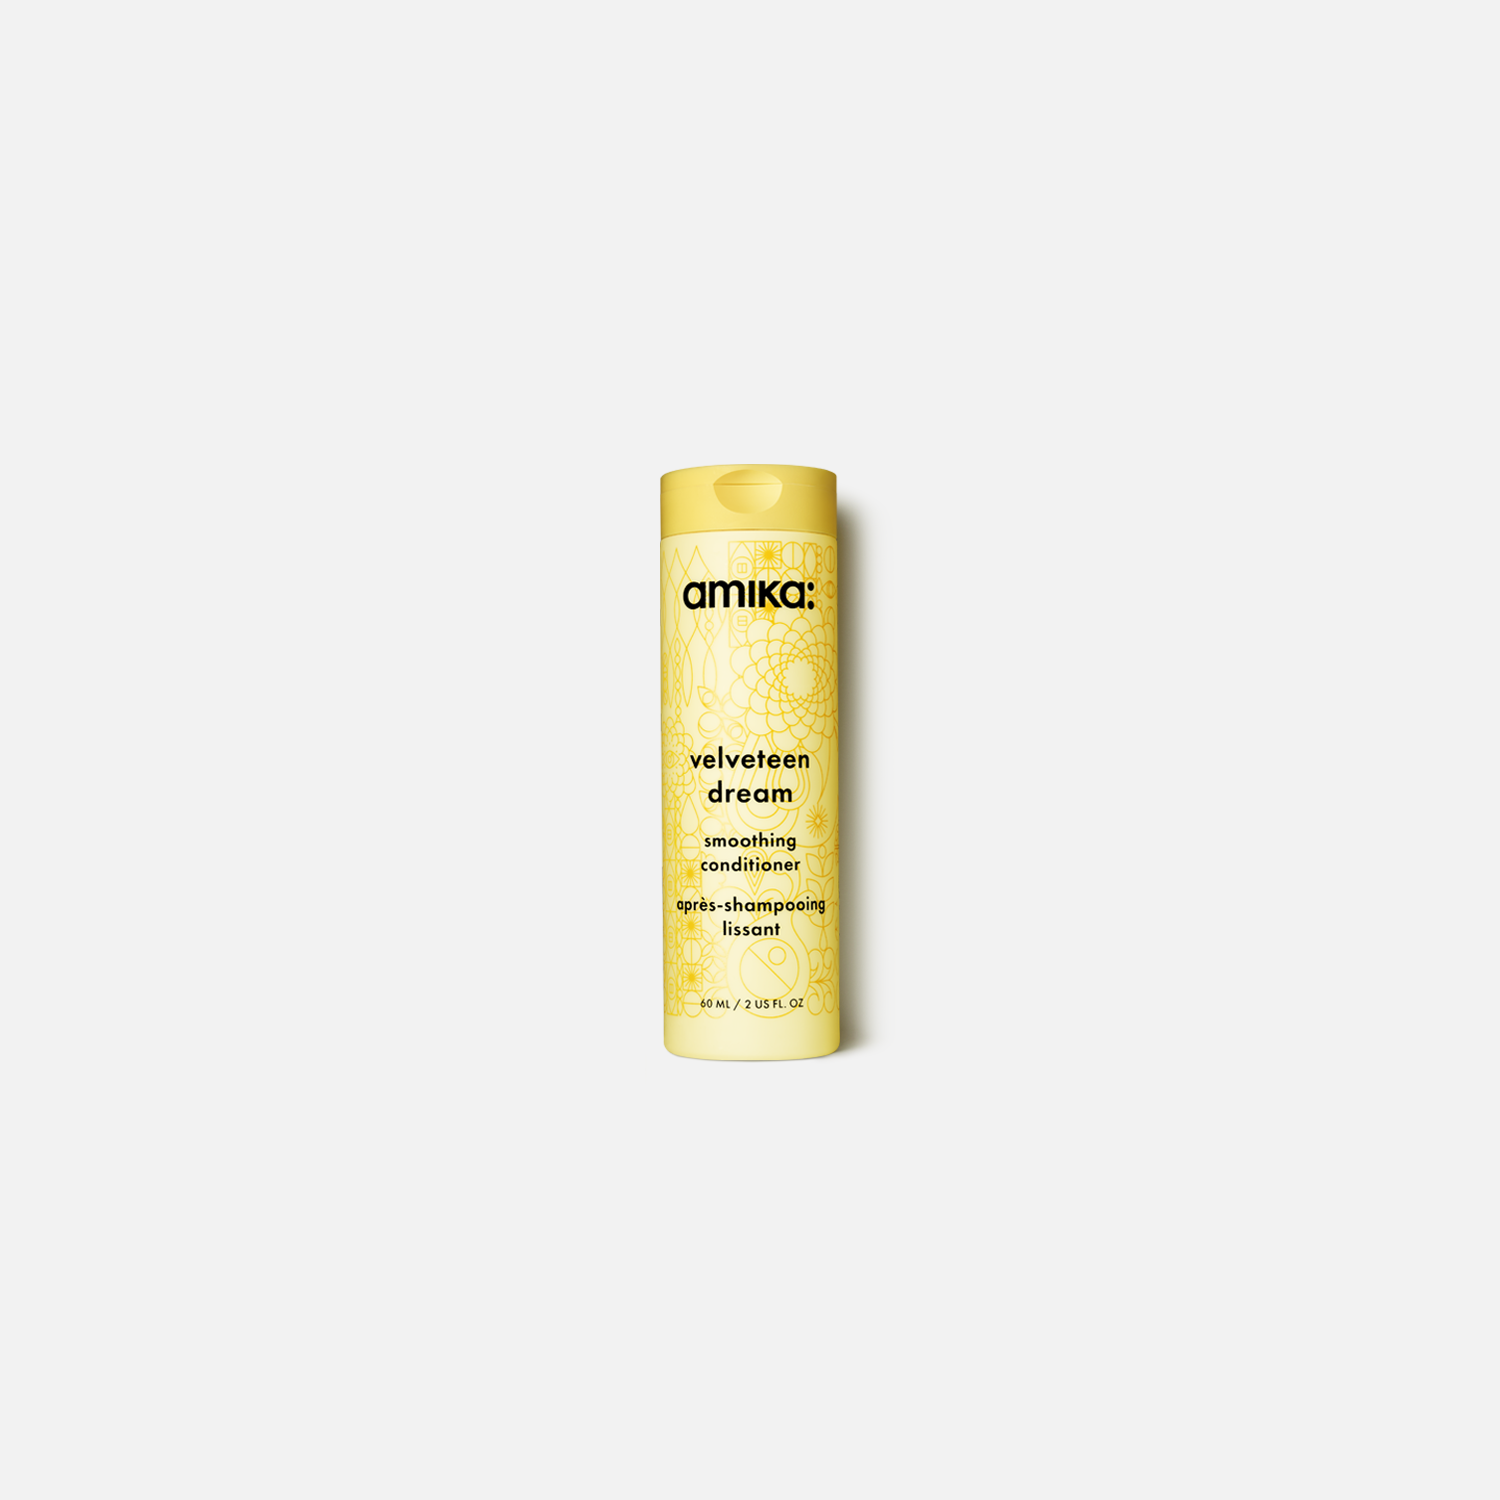 Velveteen Dream Smoothing Conditioner 2 oz | amika